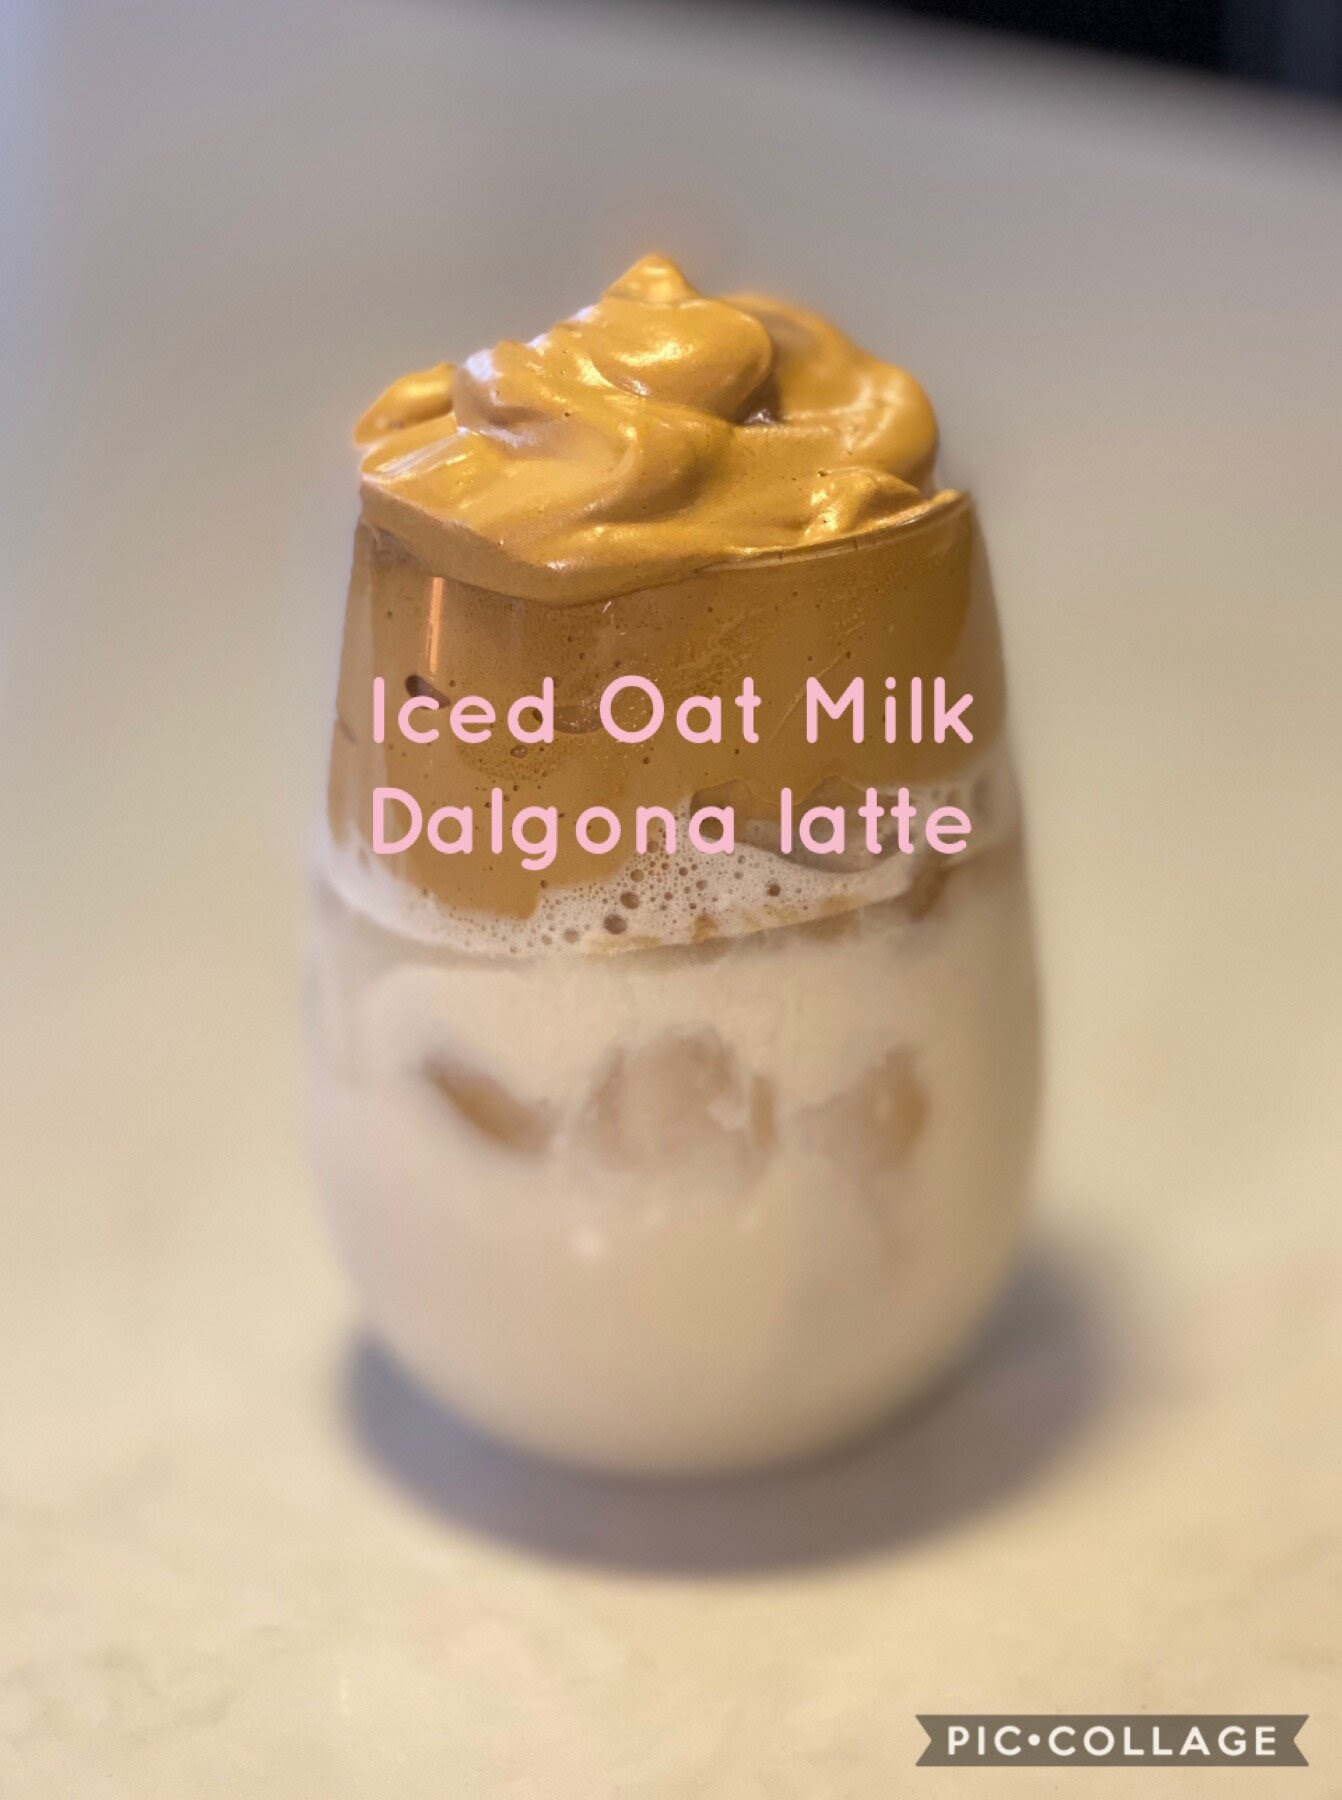 We Made Trendy Dalgona Coffee And Dalgona Matcha So You Don T Have To You Really Don T Have To Plant Based Iced And Hot Dalgona Coffee Dalgona Matcha Dalgona Mocha Home Recipes Phil